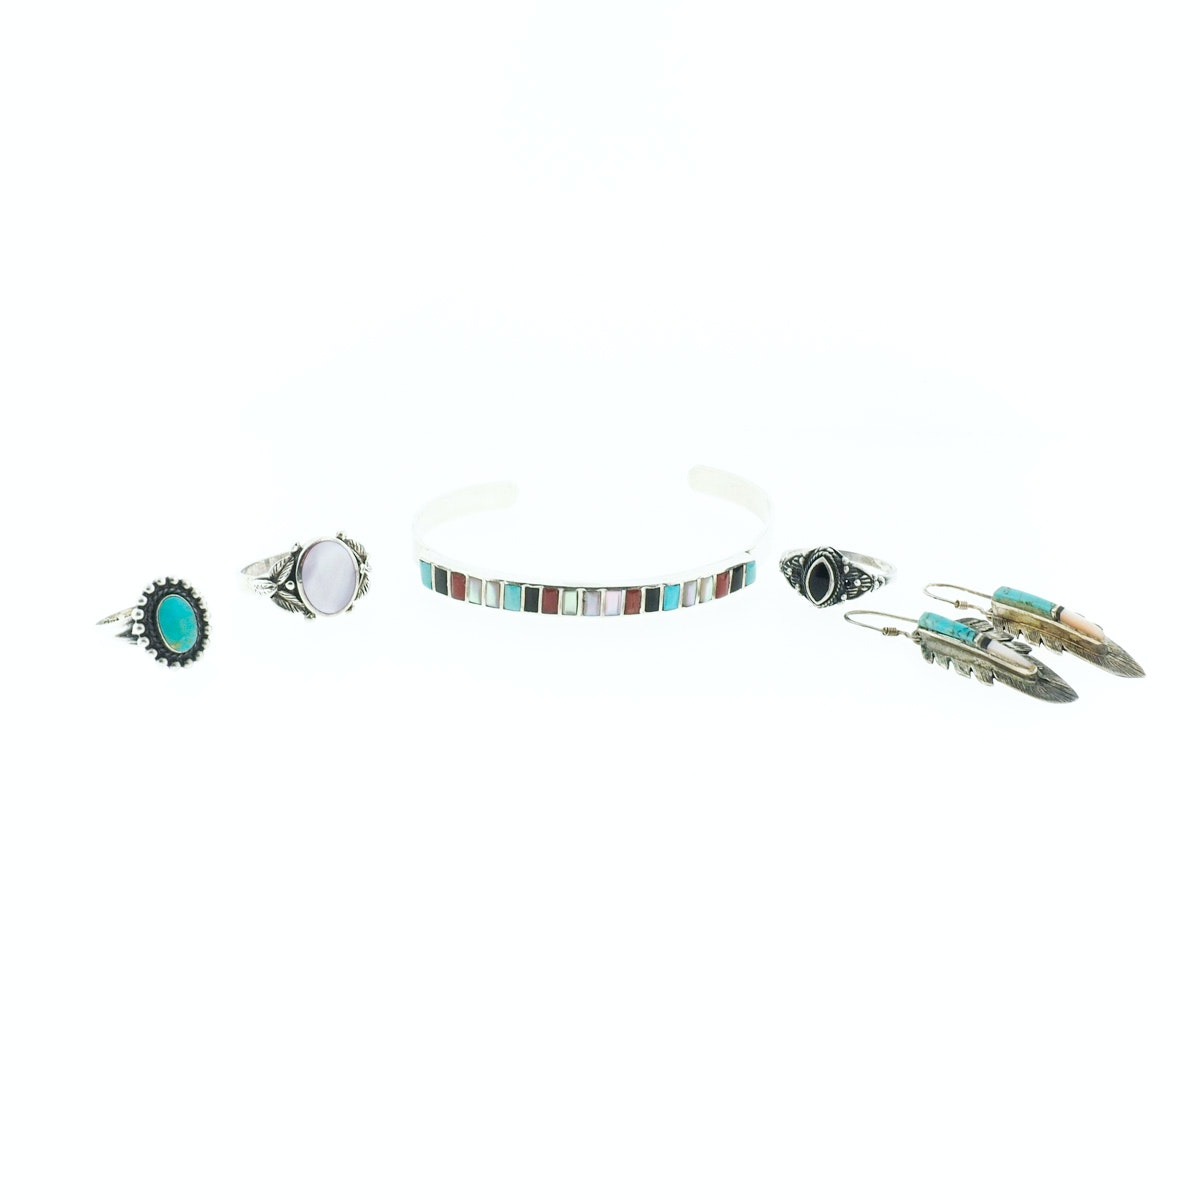 Sterling Silver with Turquoise, Mother of Pearl, and Onyx Jewelry Collection